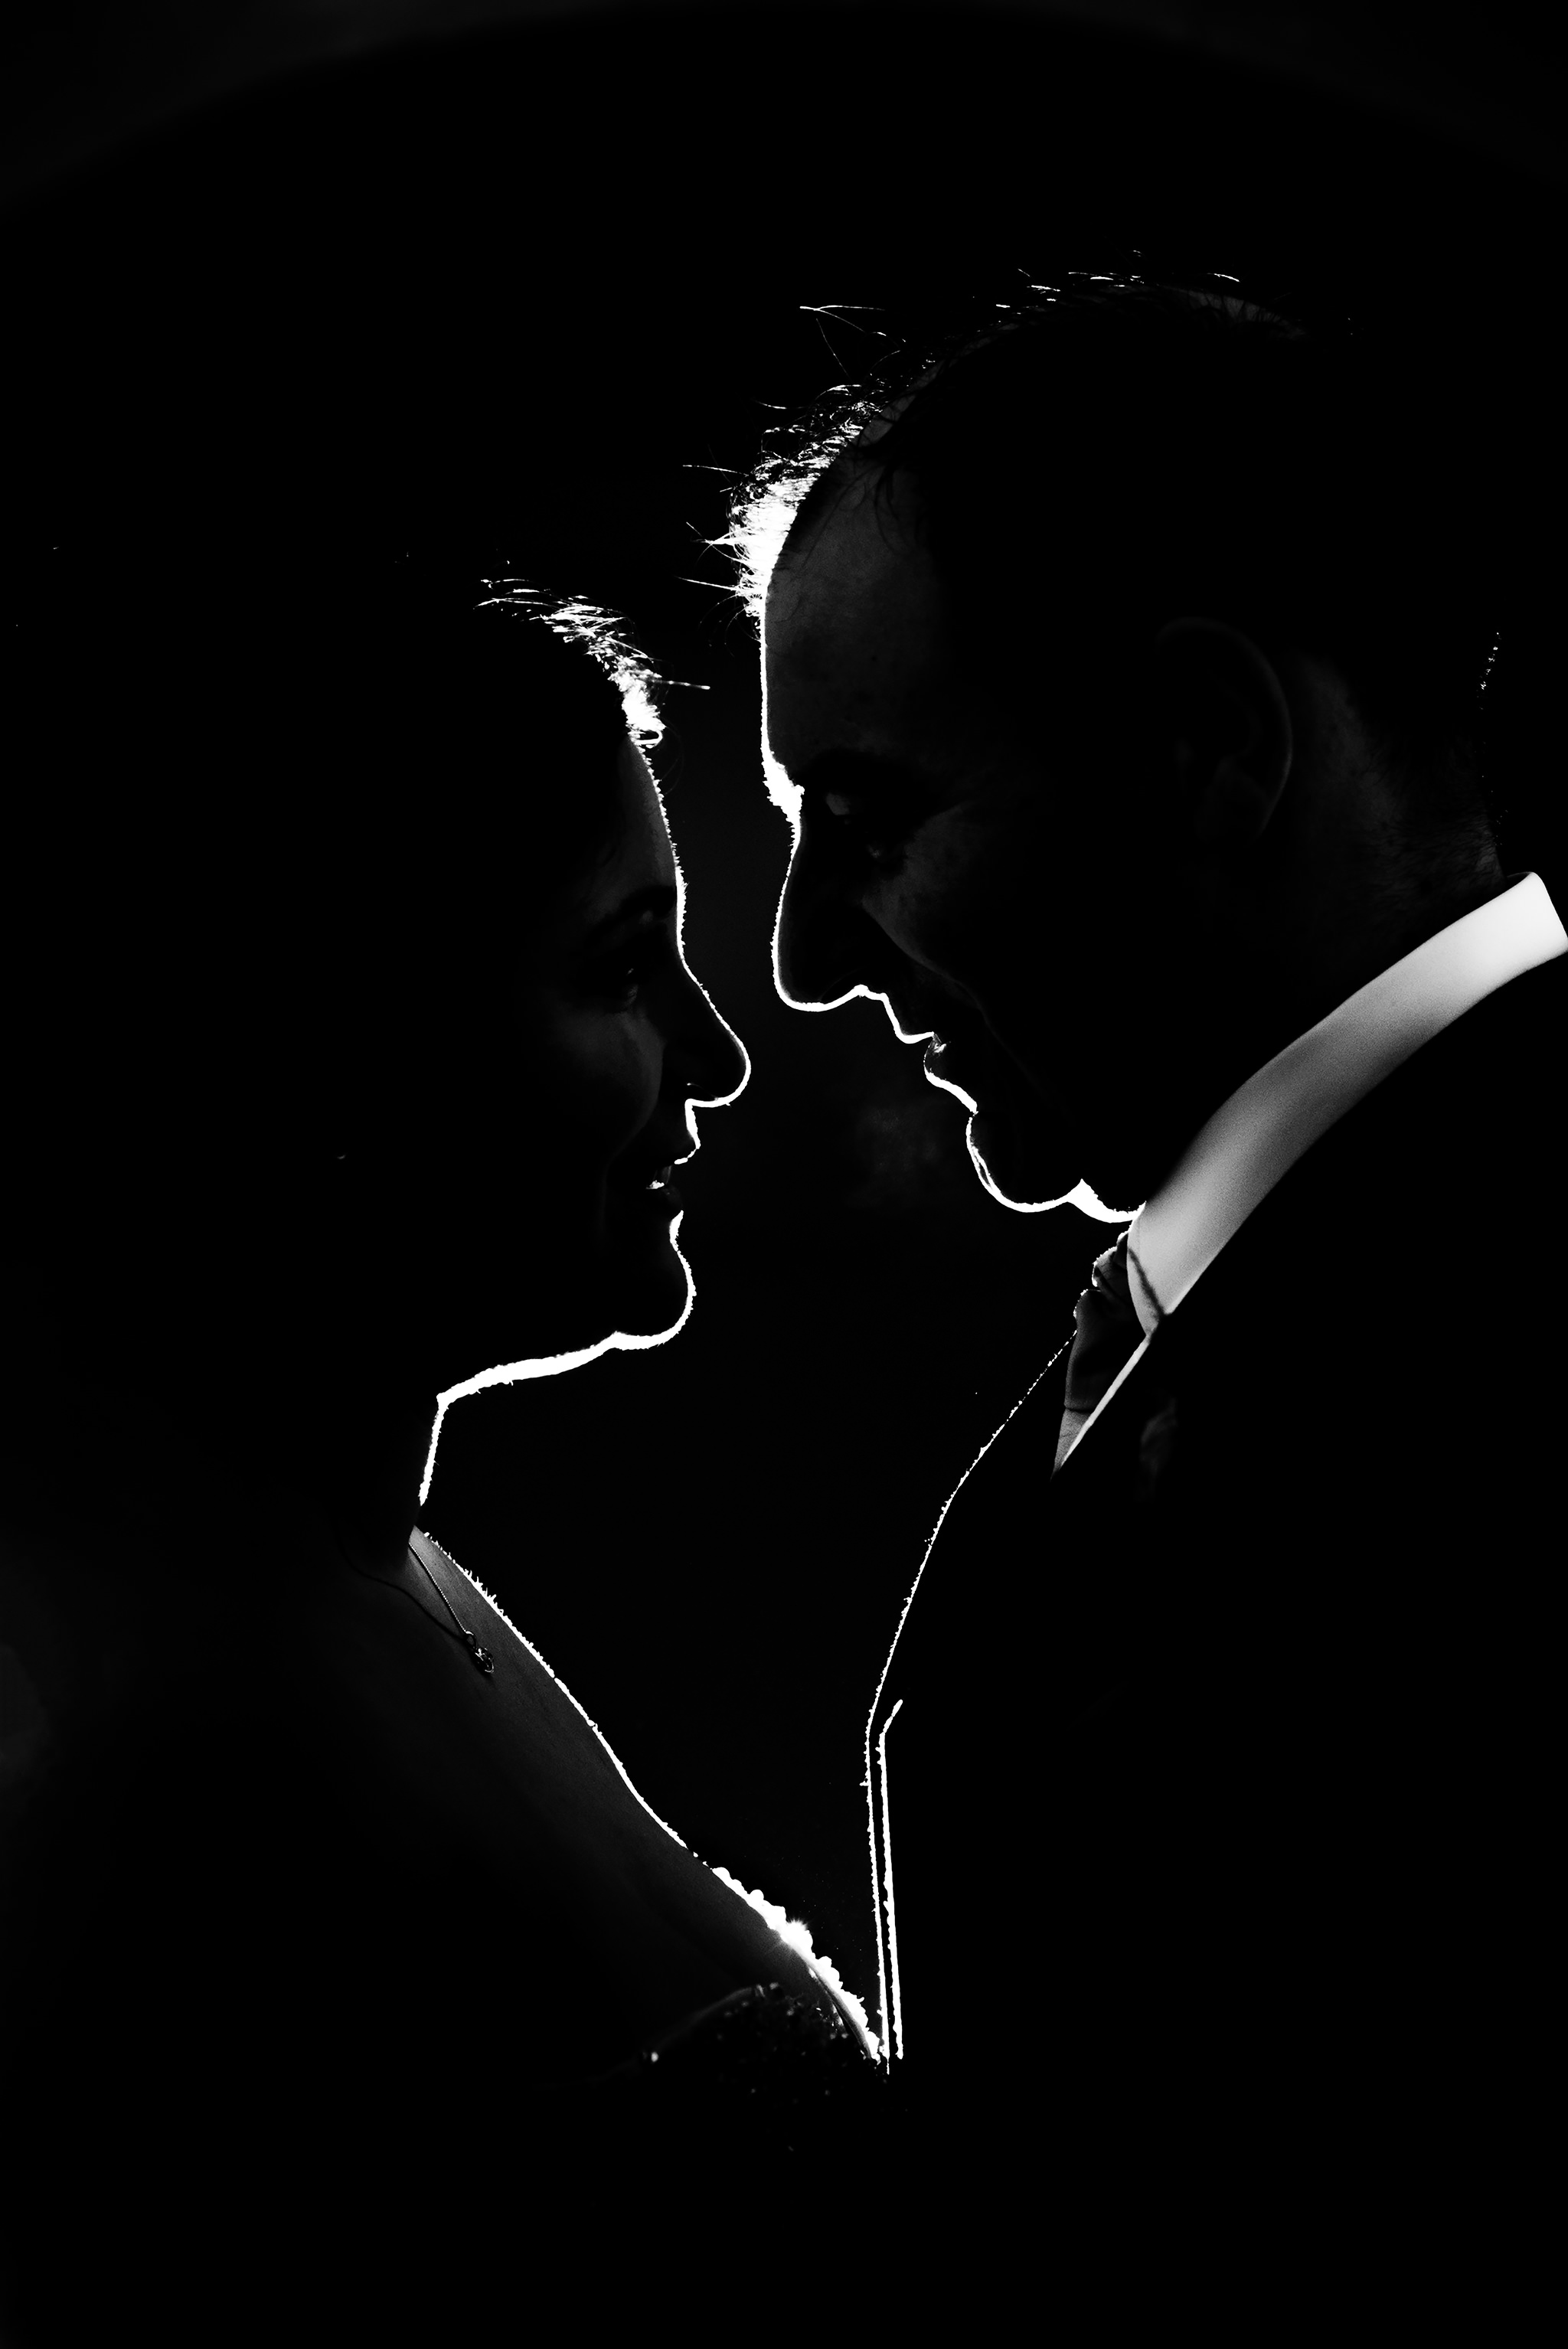 Bride and Groom Black and white silhouette portrait